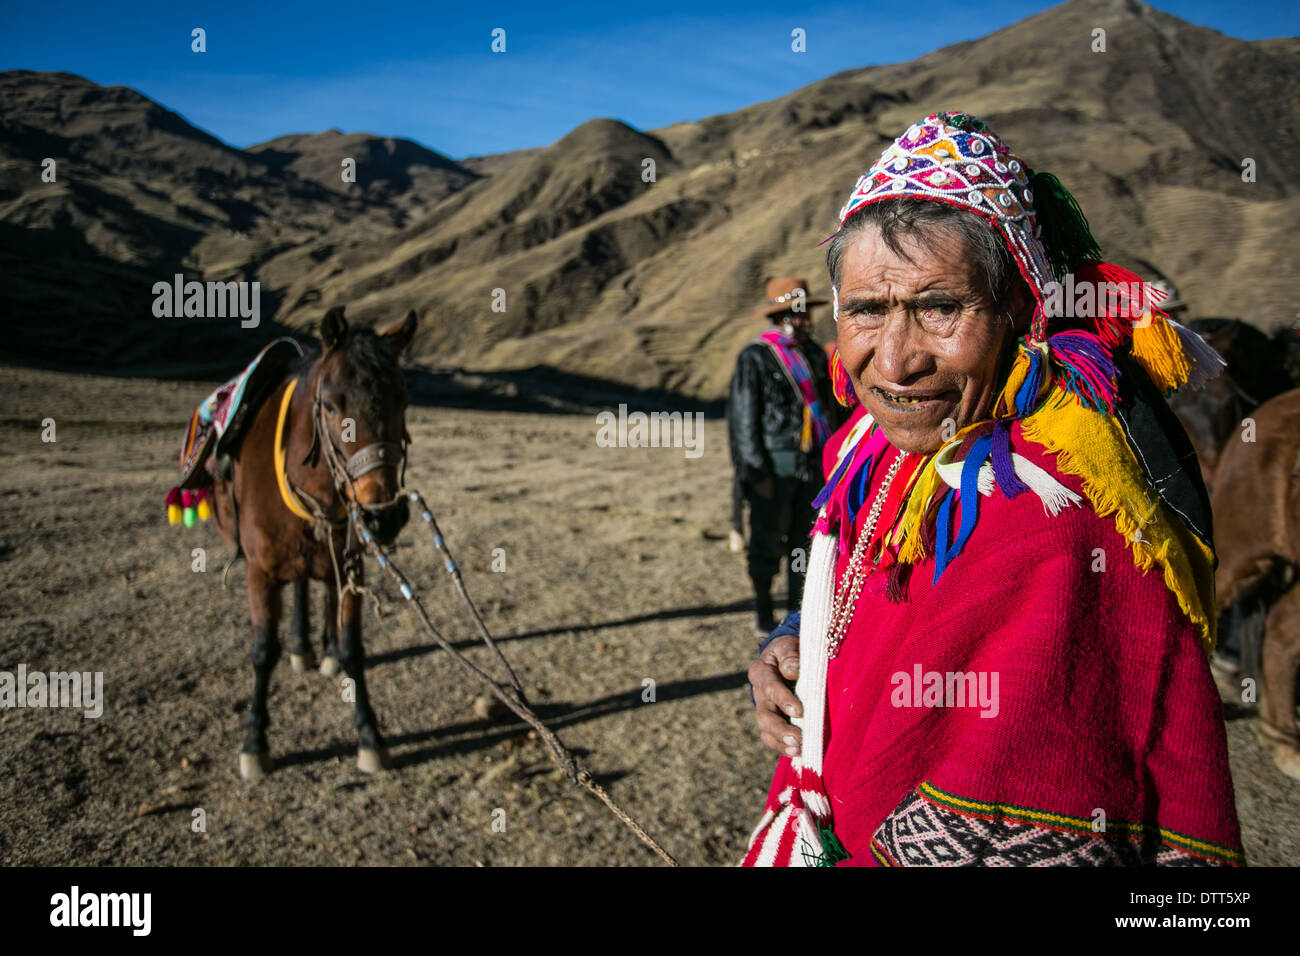 horse race in the highlands of the andes, the horseman is a old quechua speaking man dressed with his topical outfit poncho - Stock Image